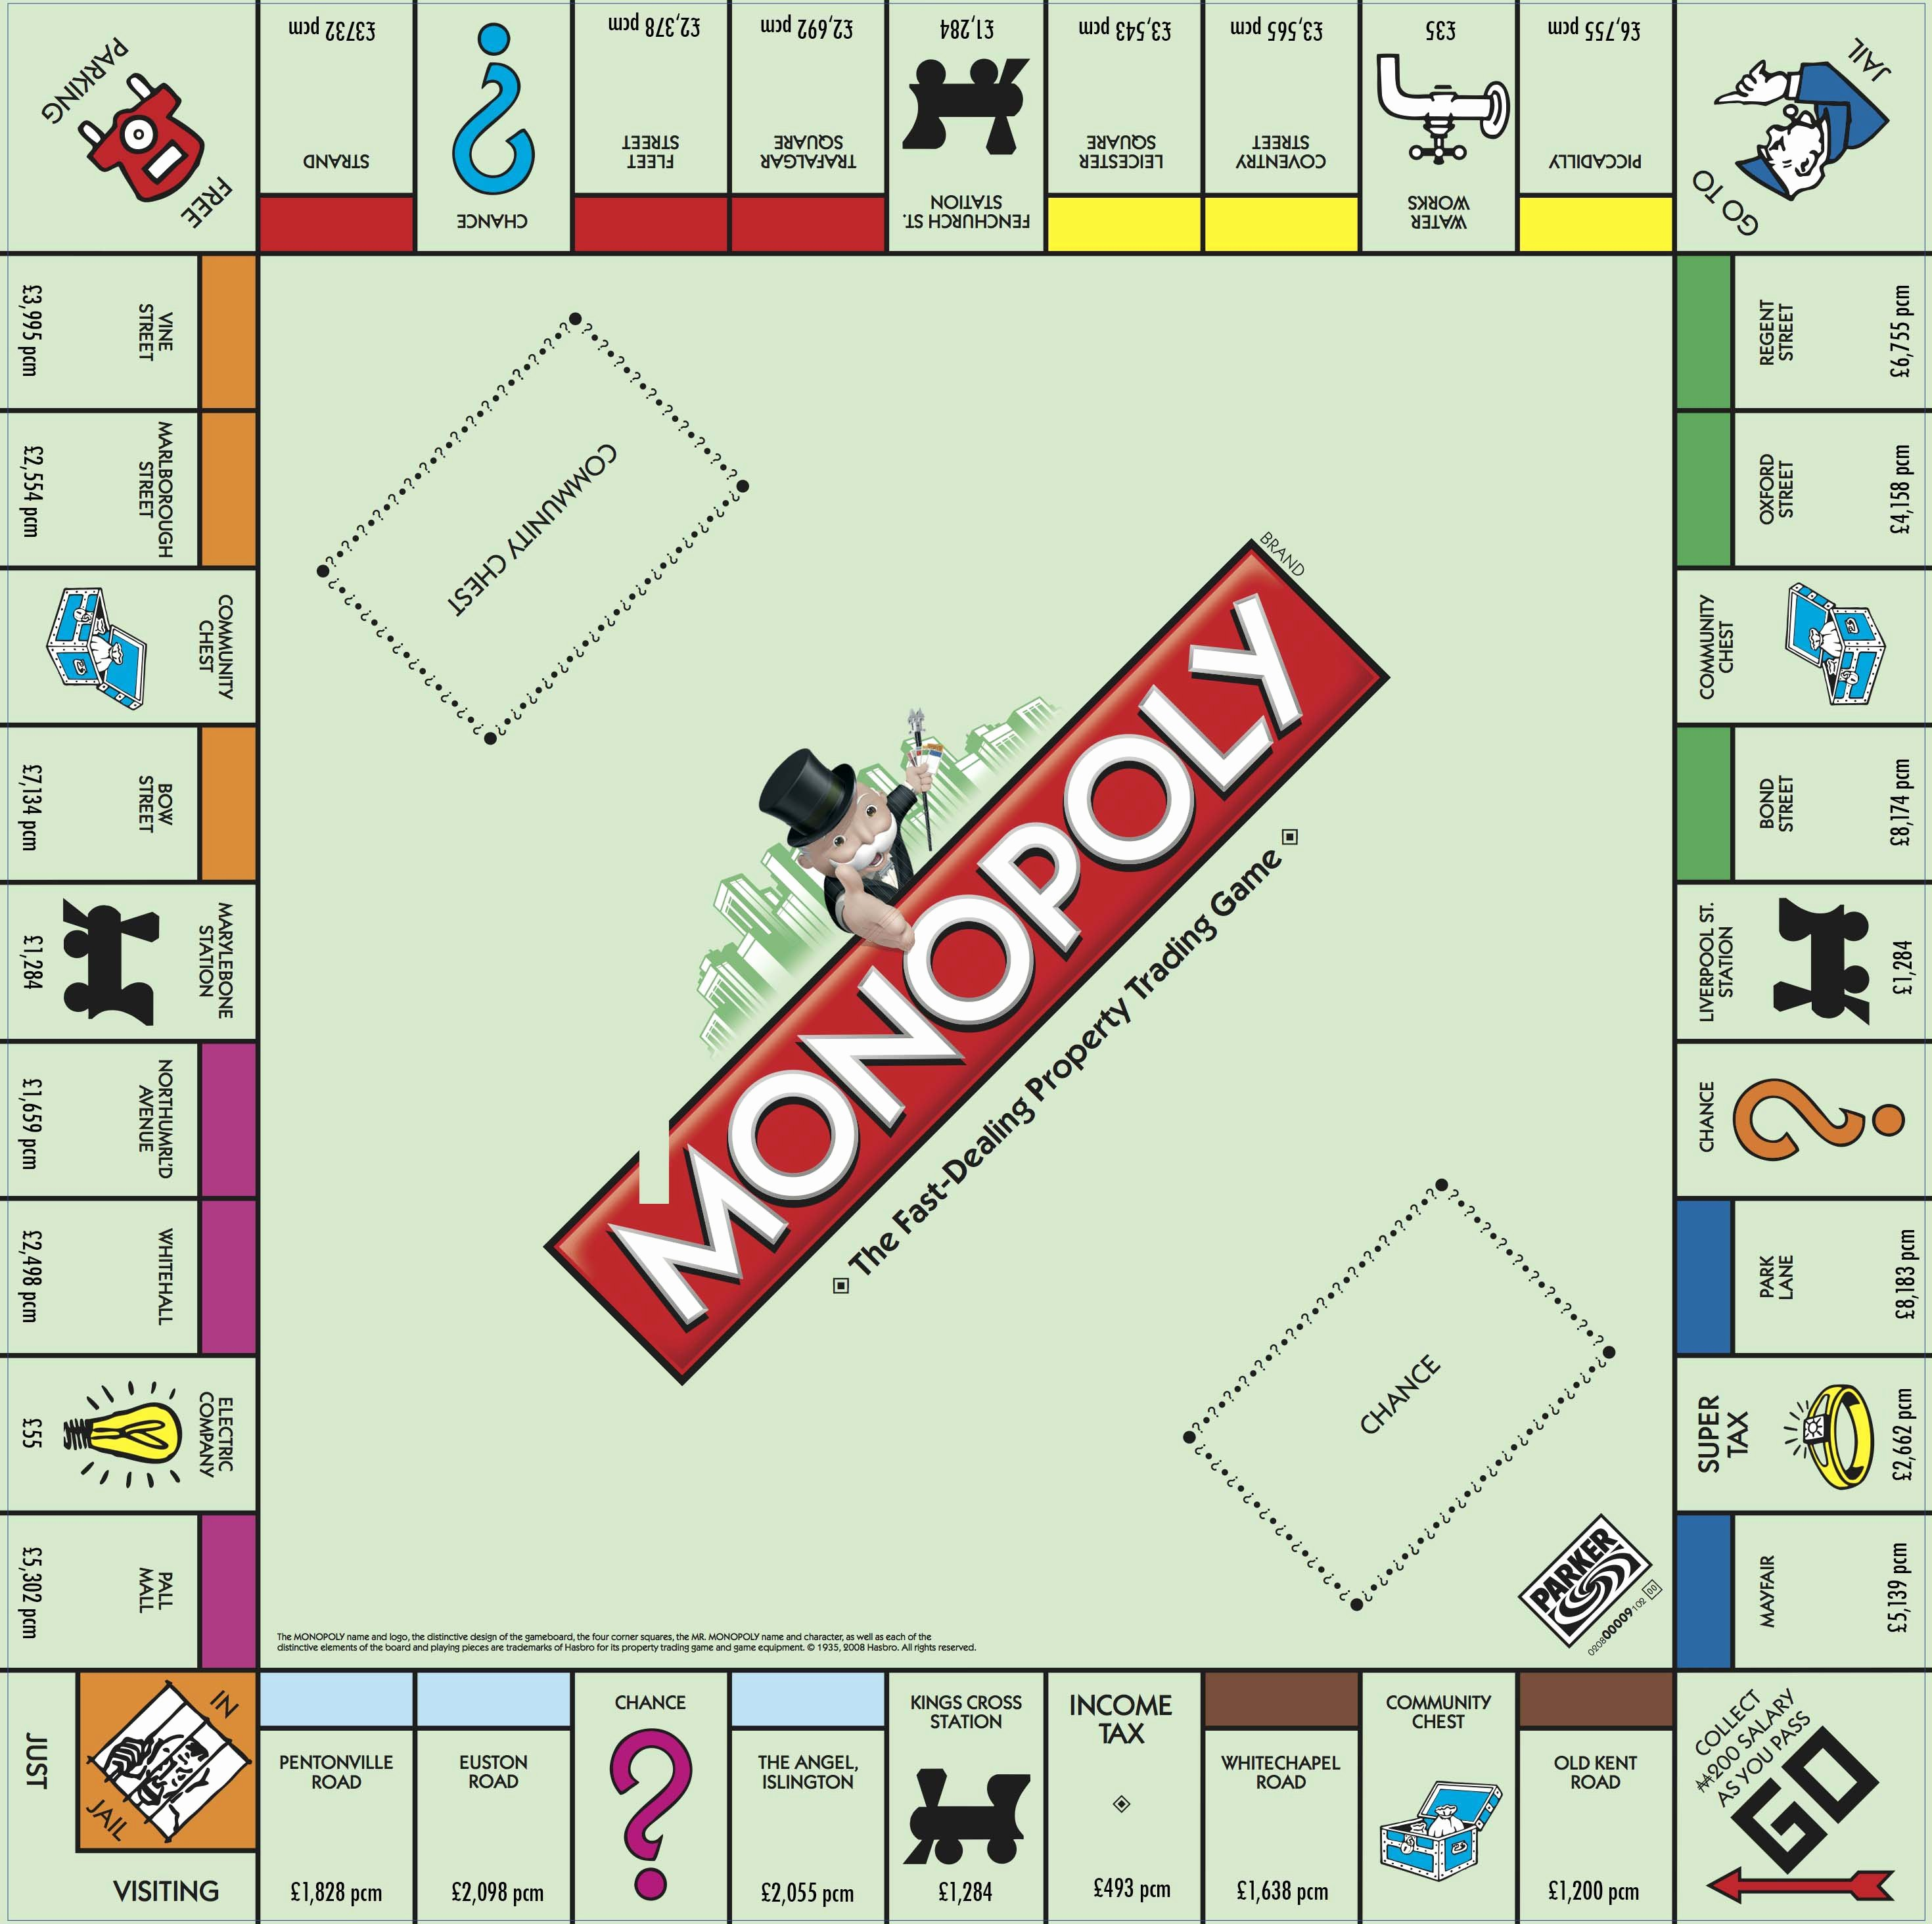 Monopoly Money Template Word Fresh Here's What the Monopoly Board Would Look Like for London